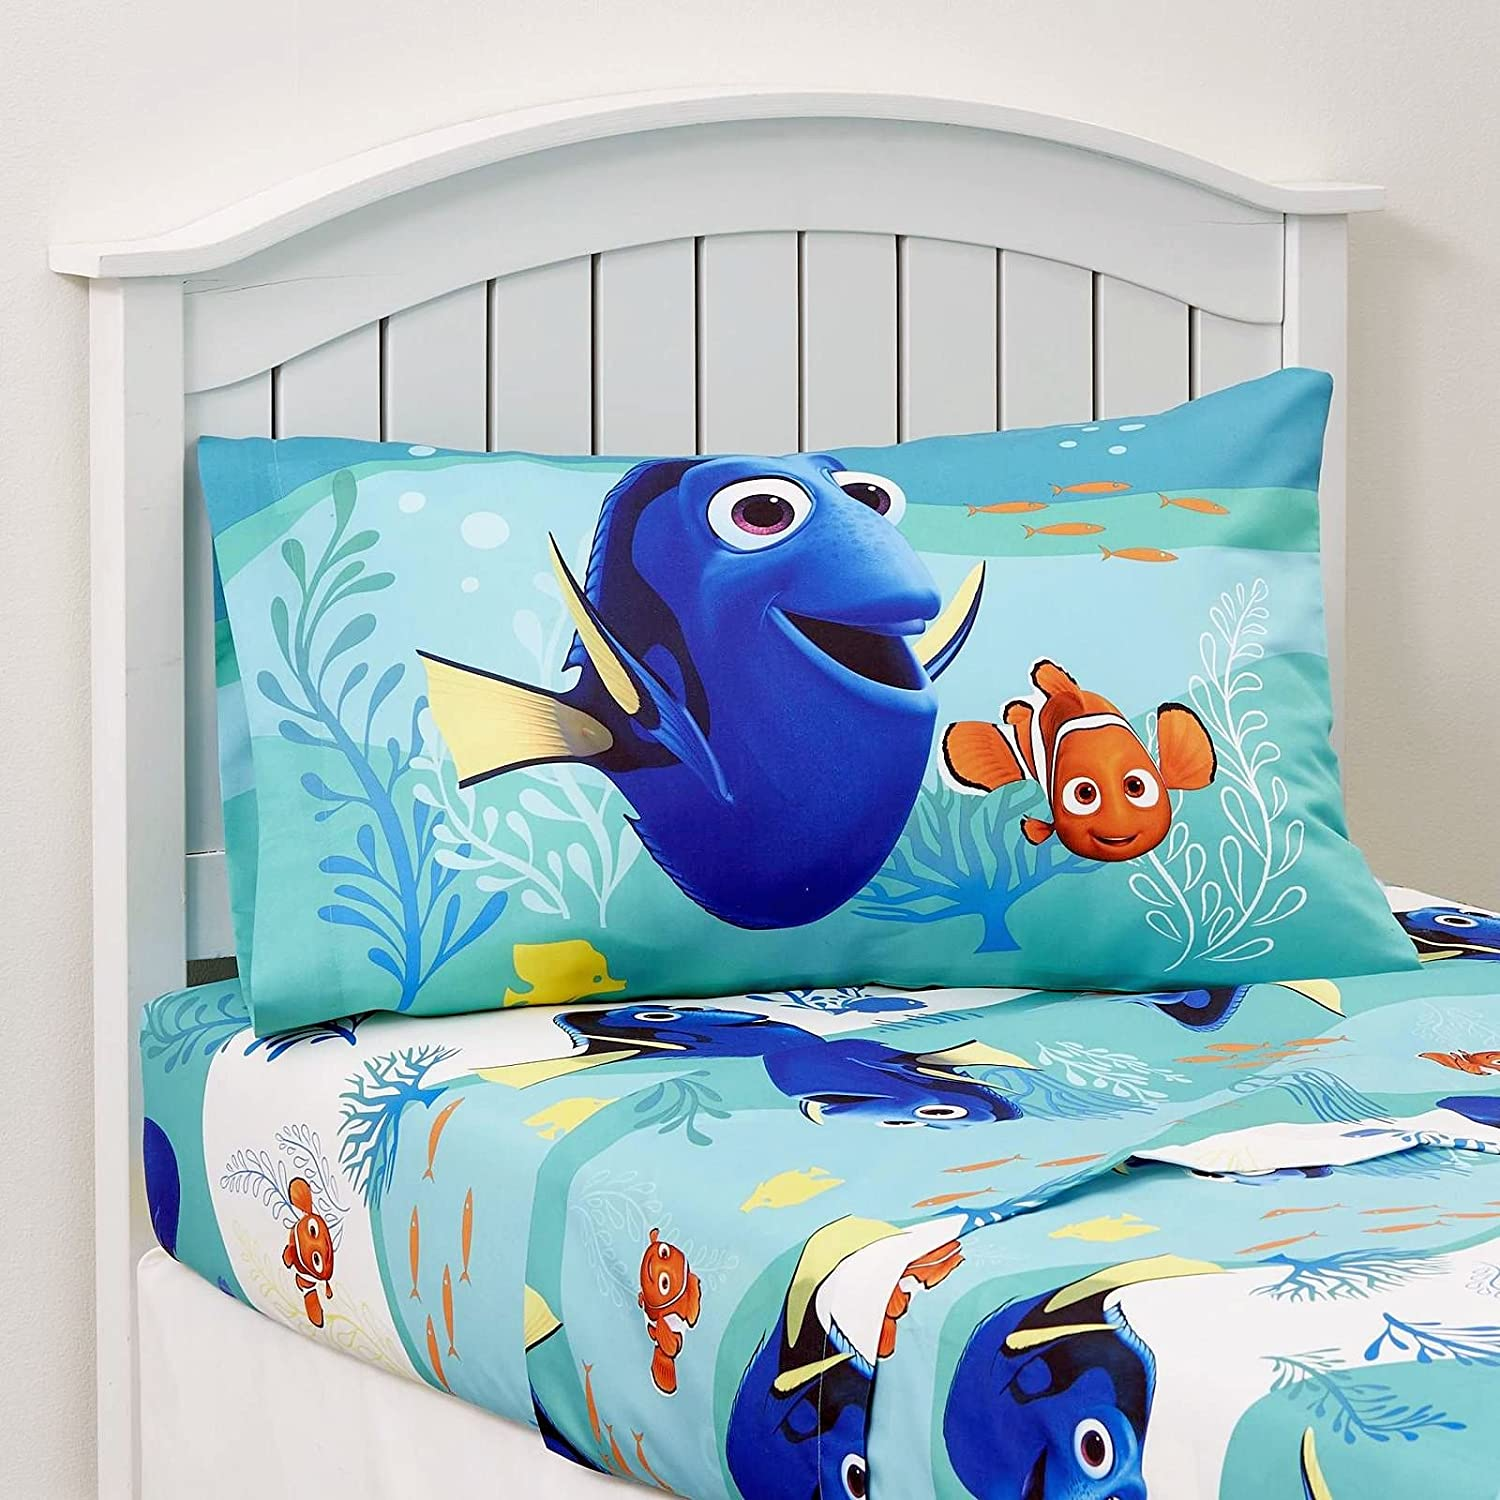 Amazon.com: Disney Finding Dory 4 Piece Bedding Set Comforter And Sheets (Twin  Size): Home U0026 Kitchen